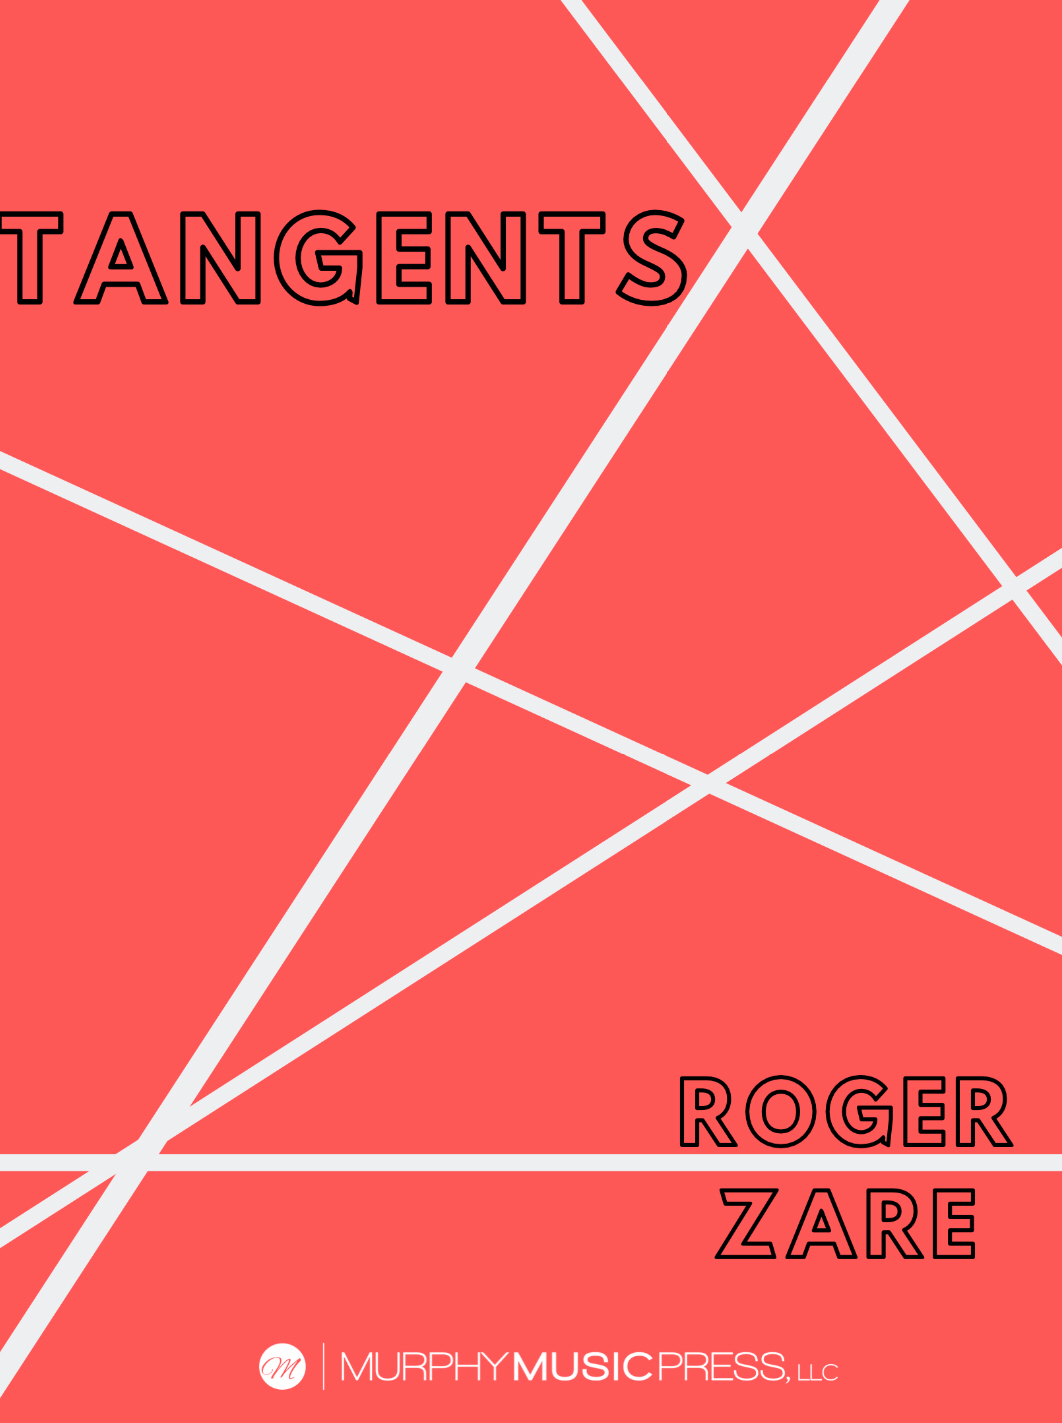 Tangents by Roger Zare